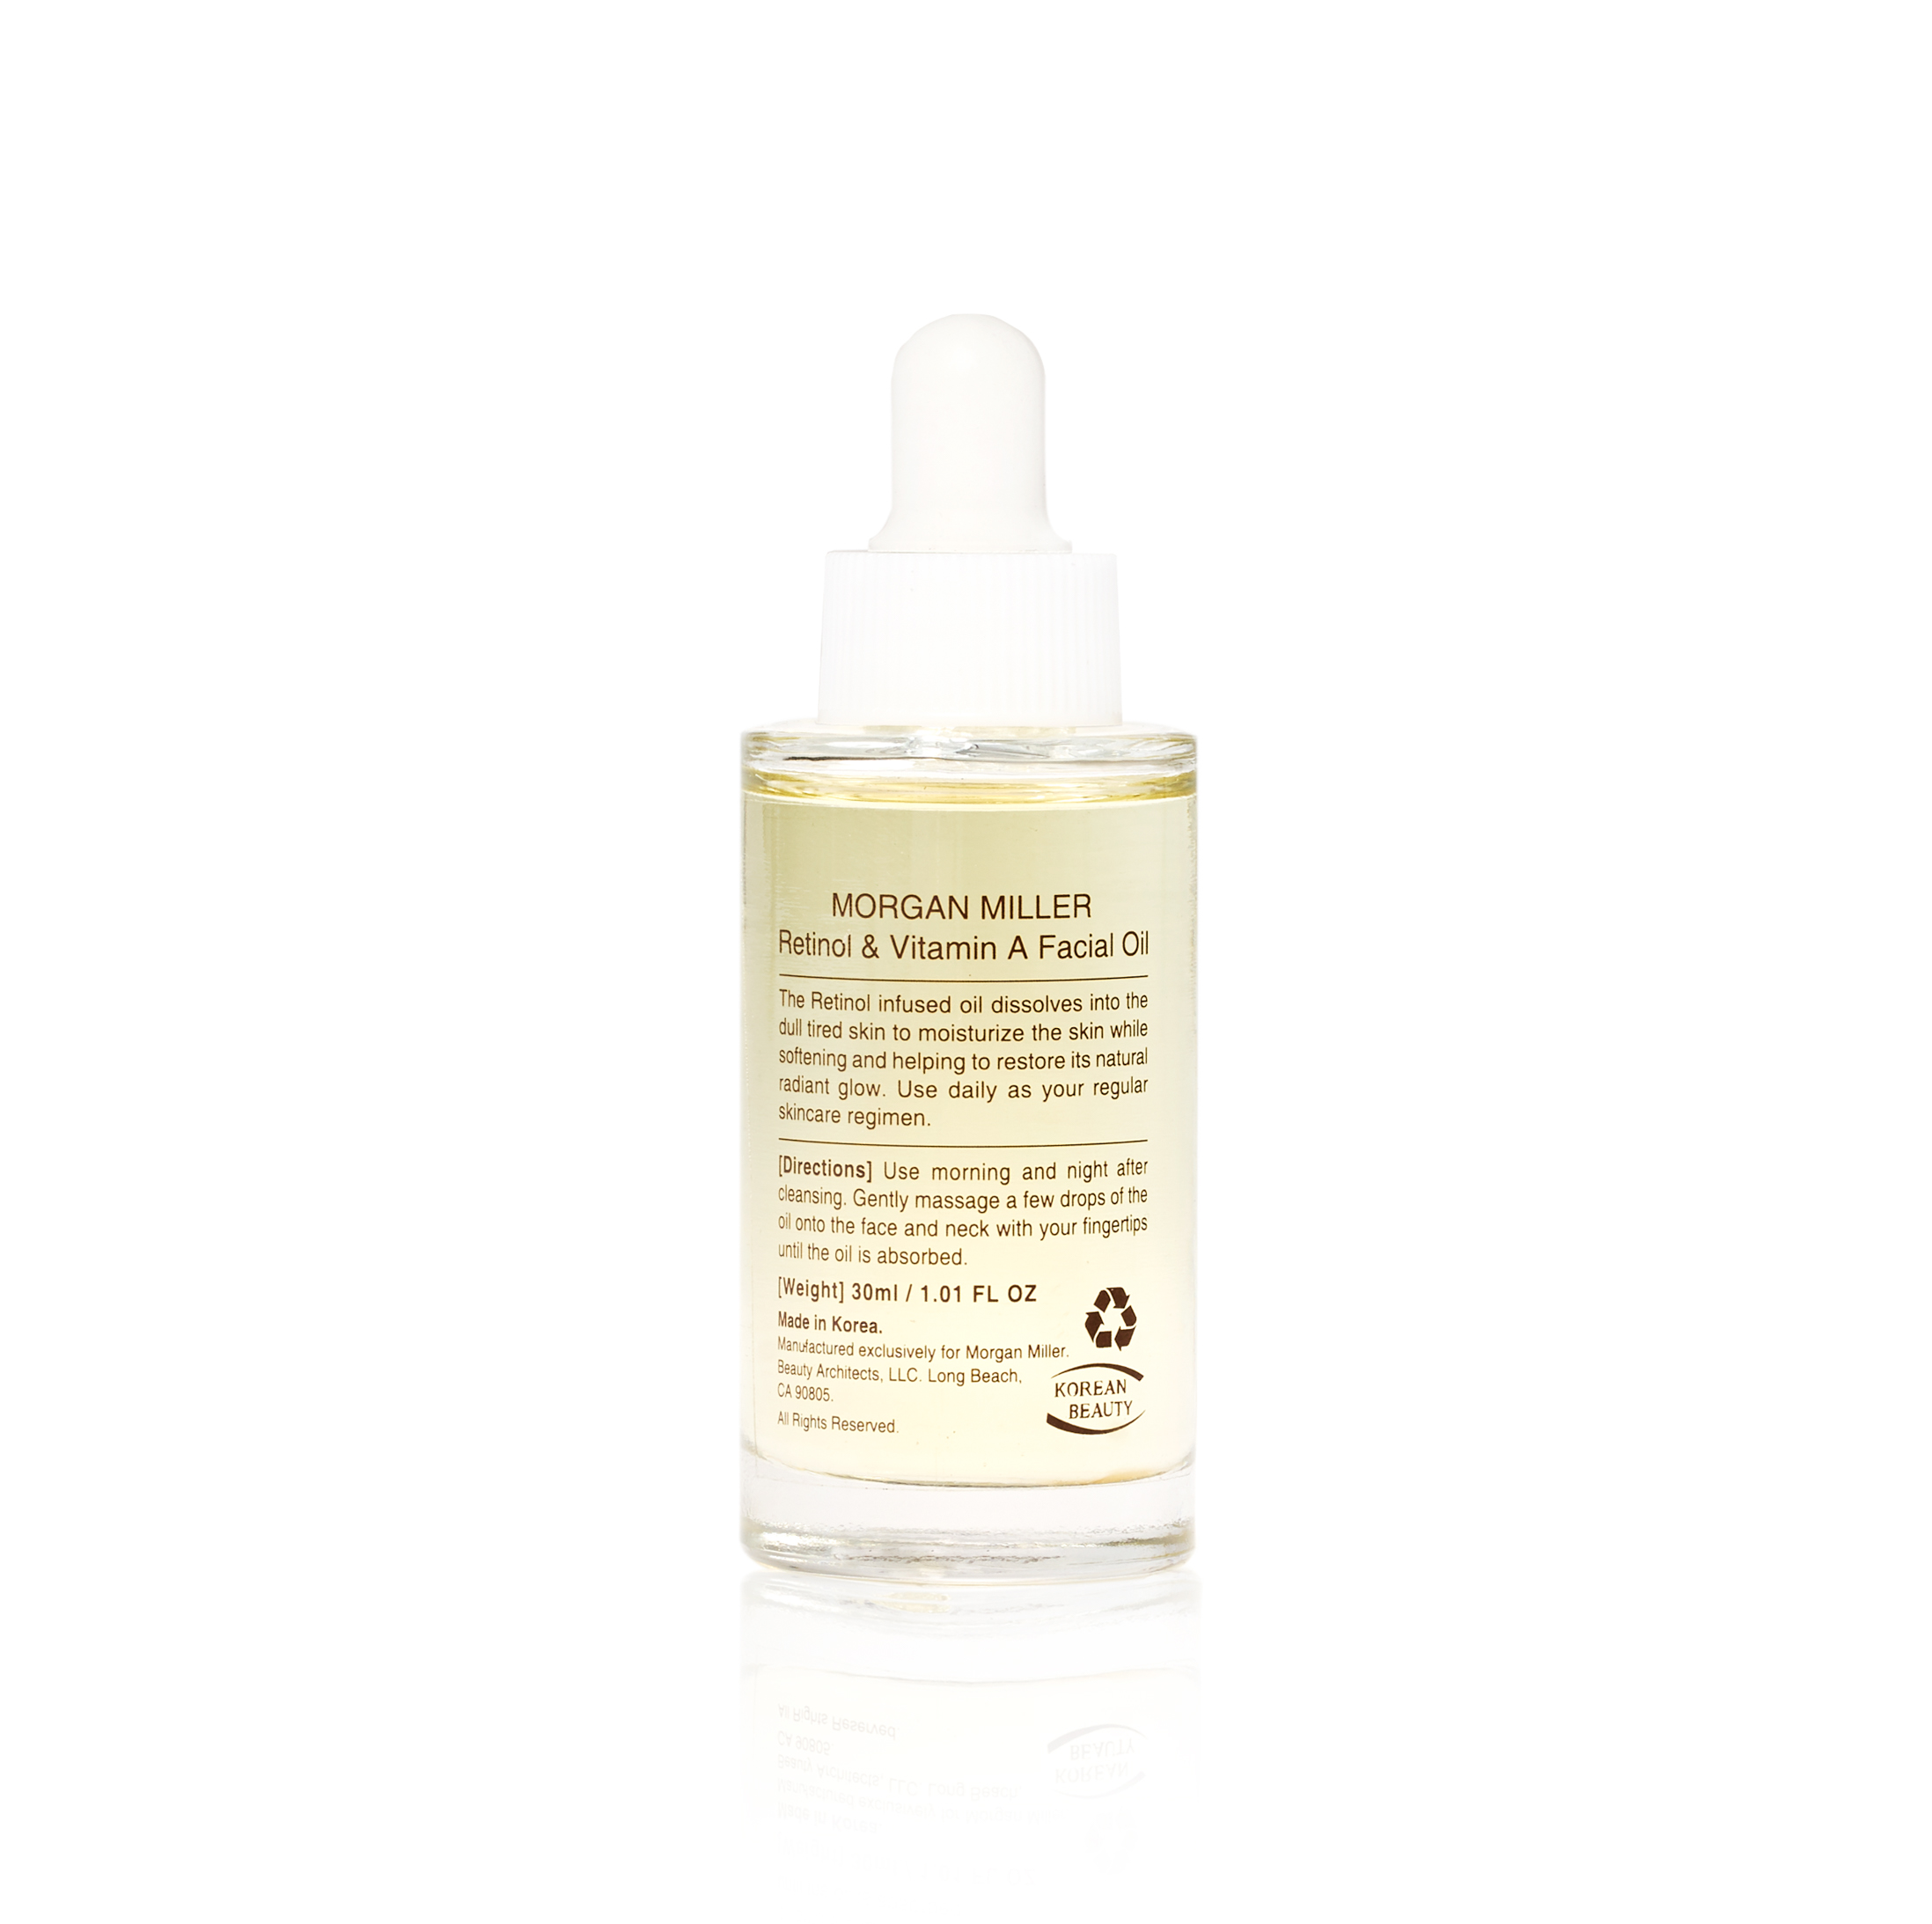 Morgan Miller Retinol & Vitamin A Facial Oil